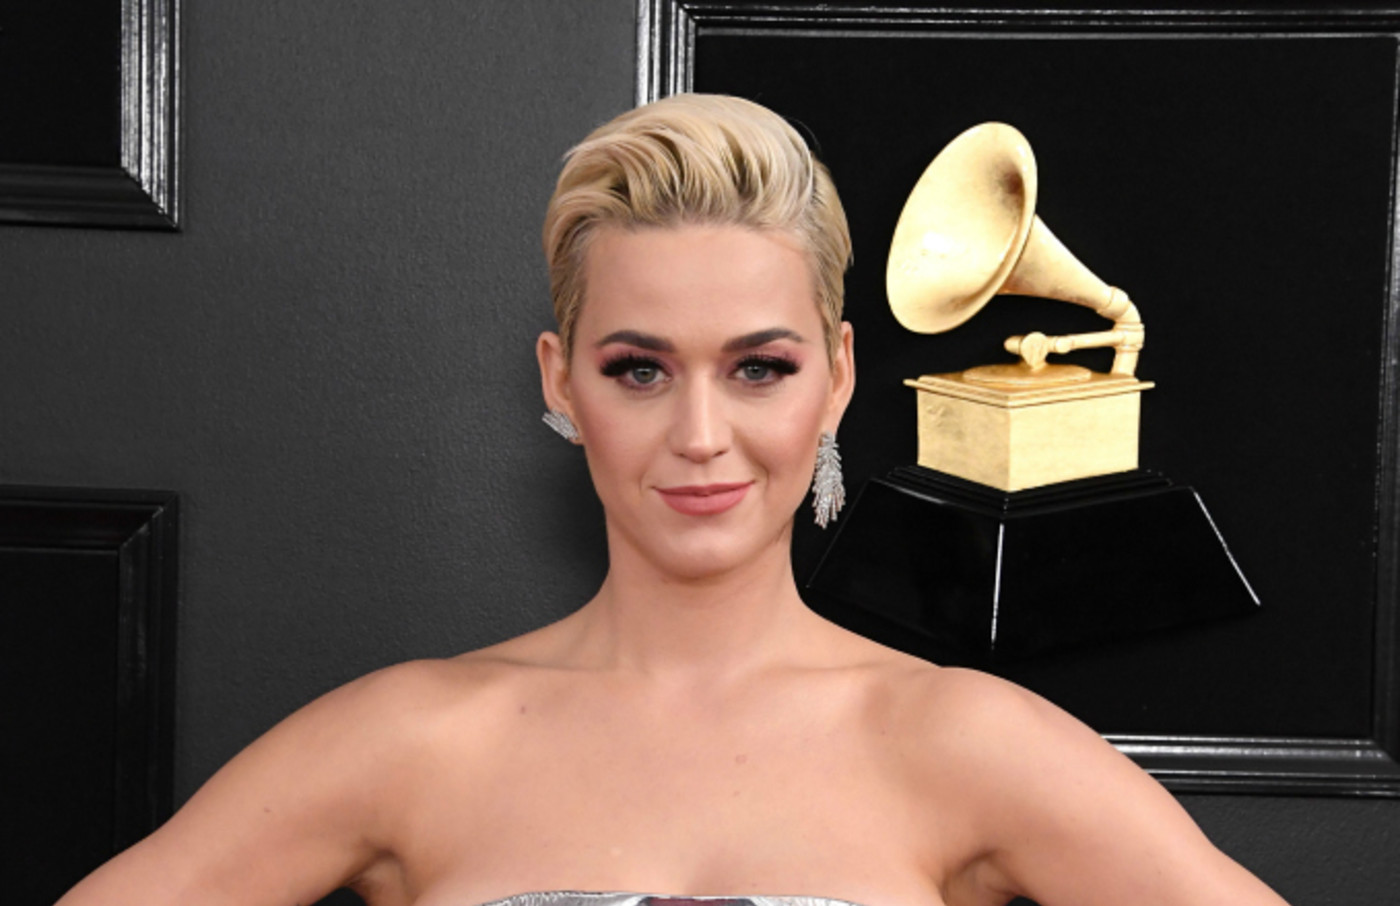 Katy Perry at the Grammy's.